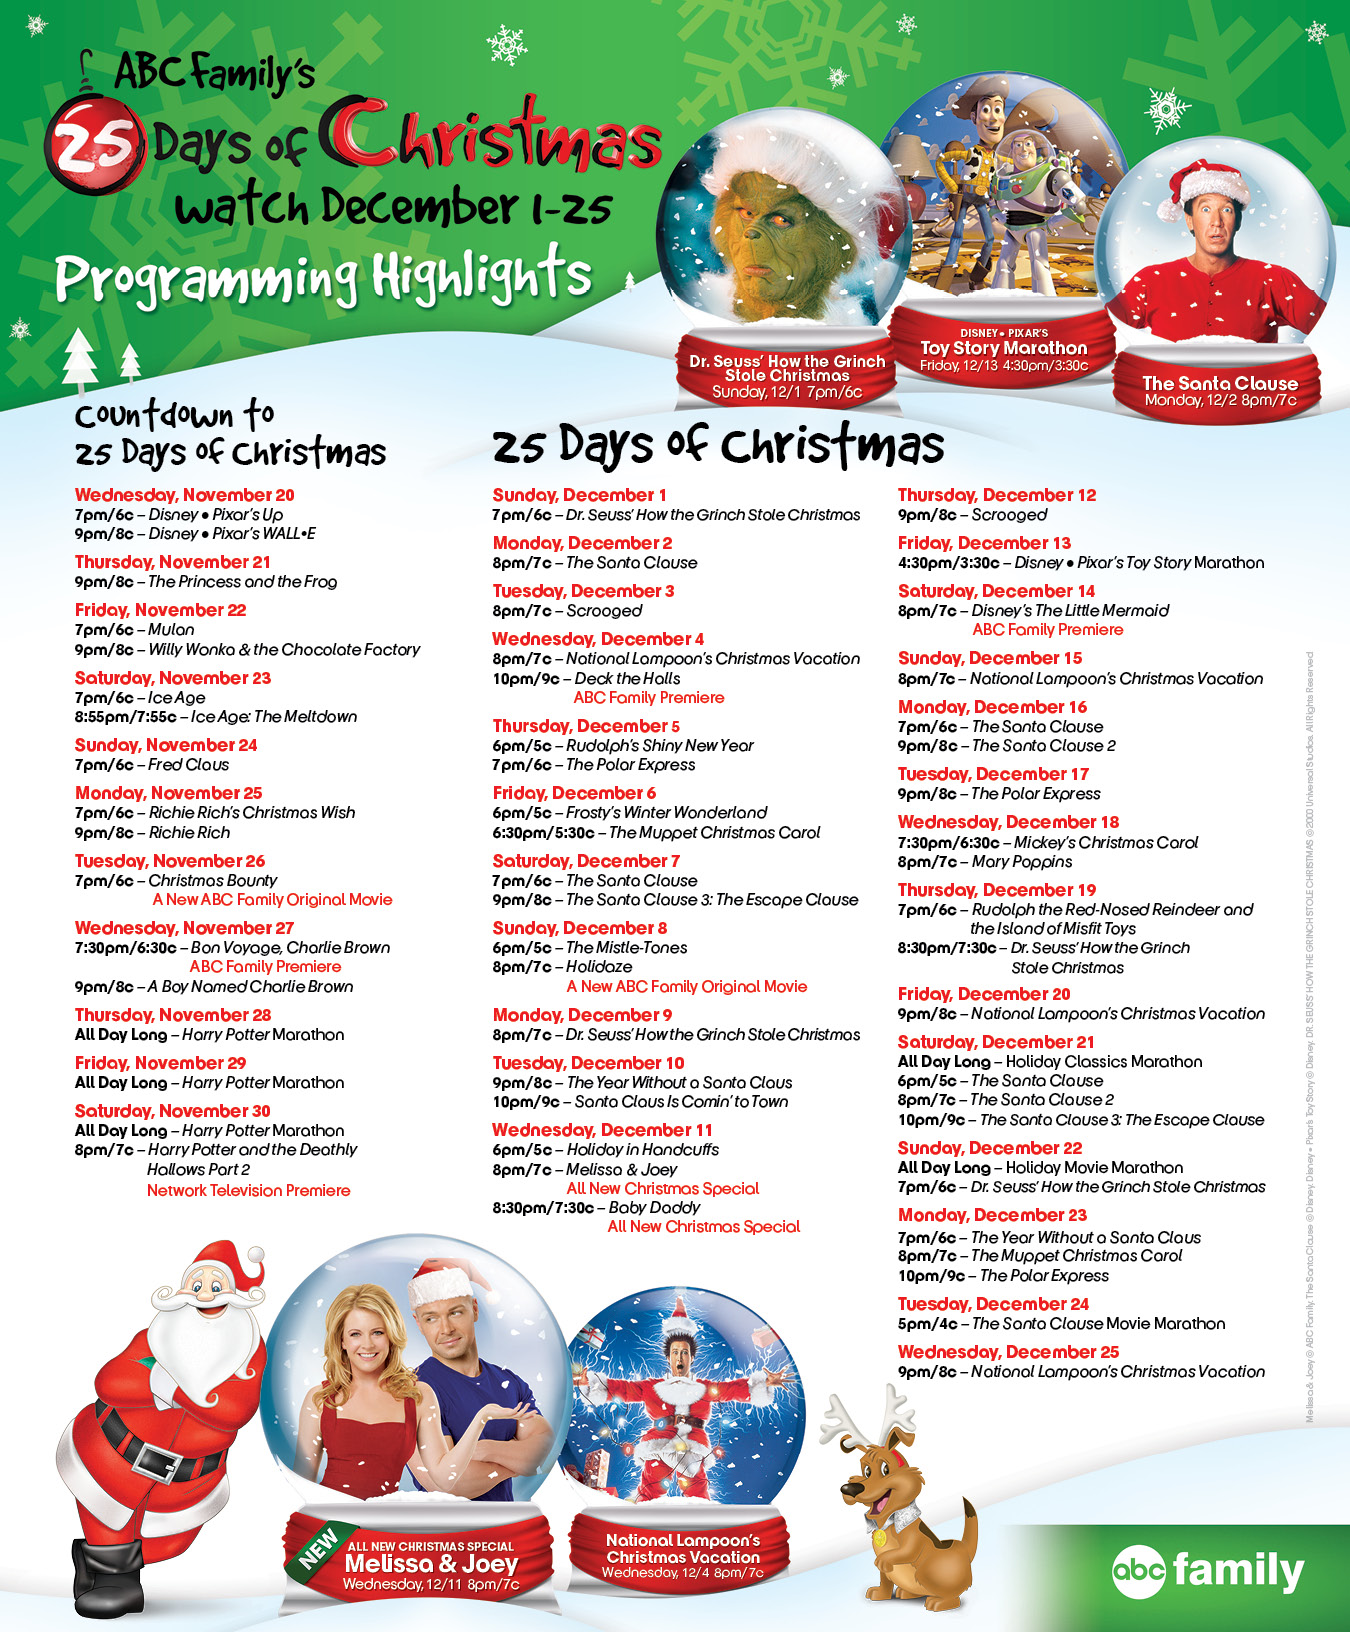 ABC Familys 25 Days Of Christmas Movie Marathon Schedule 2013